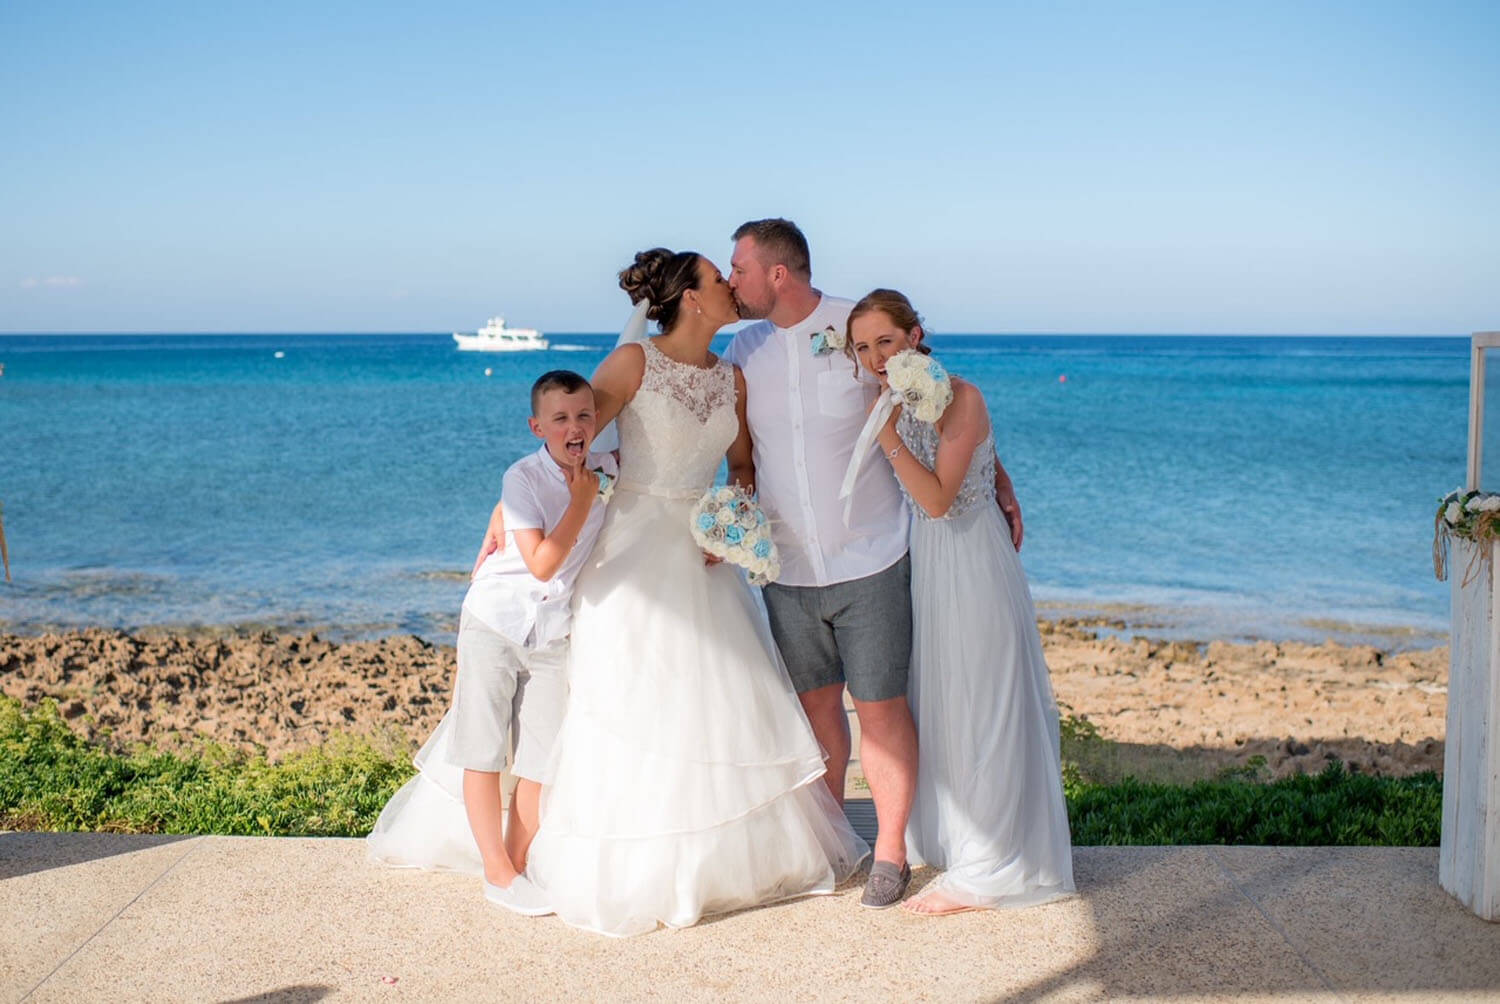 Bride and Groom with their children at the seashore in Cyprus